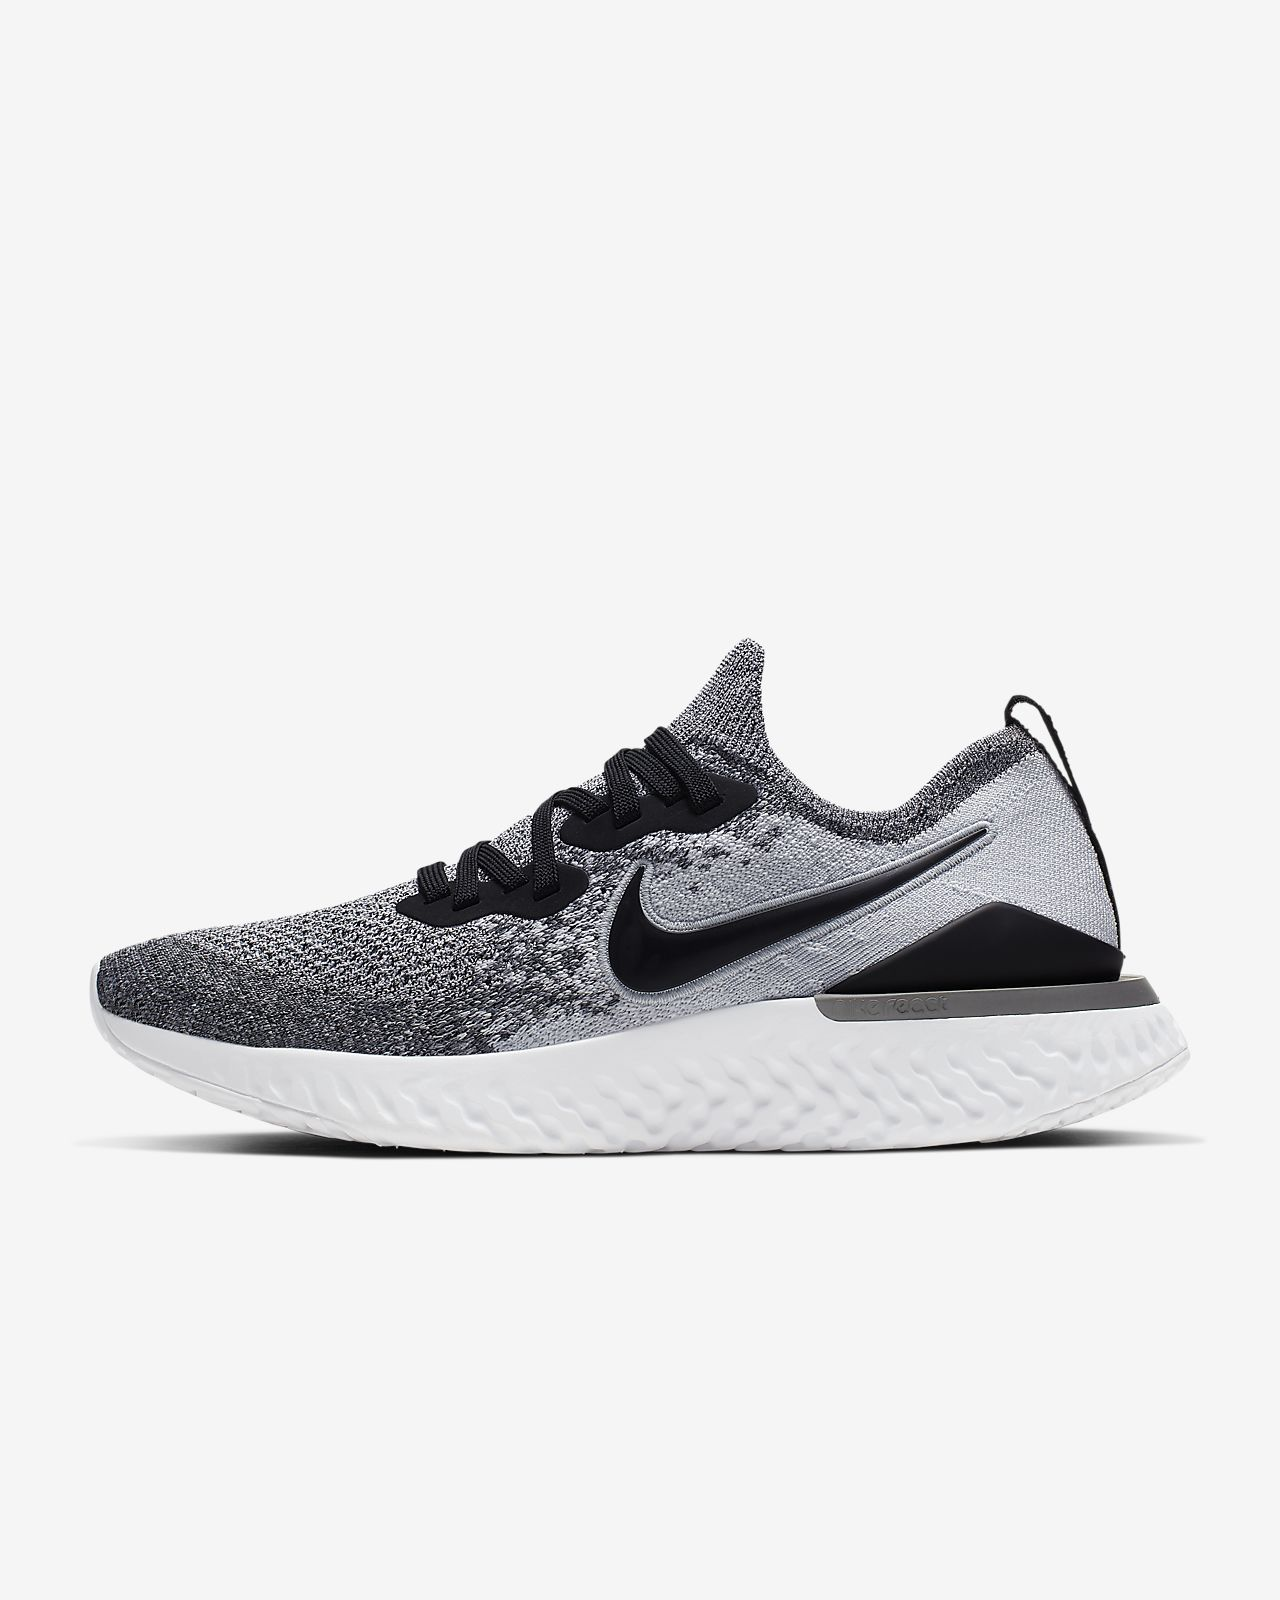 official photos 80af1 3abd7 Nike Epic React Flyknit 2 Women's Running Shoe